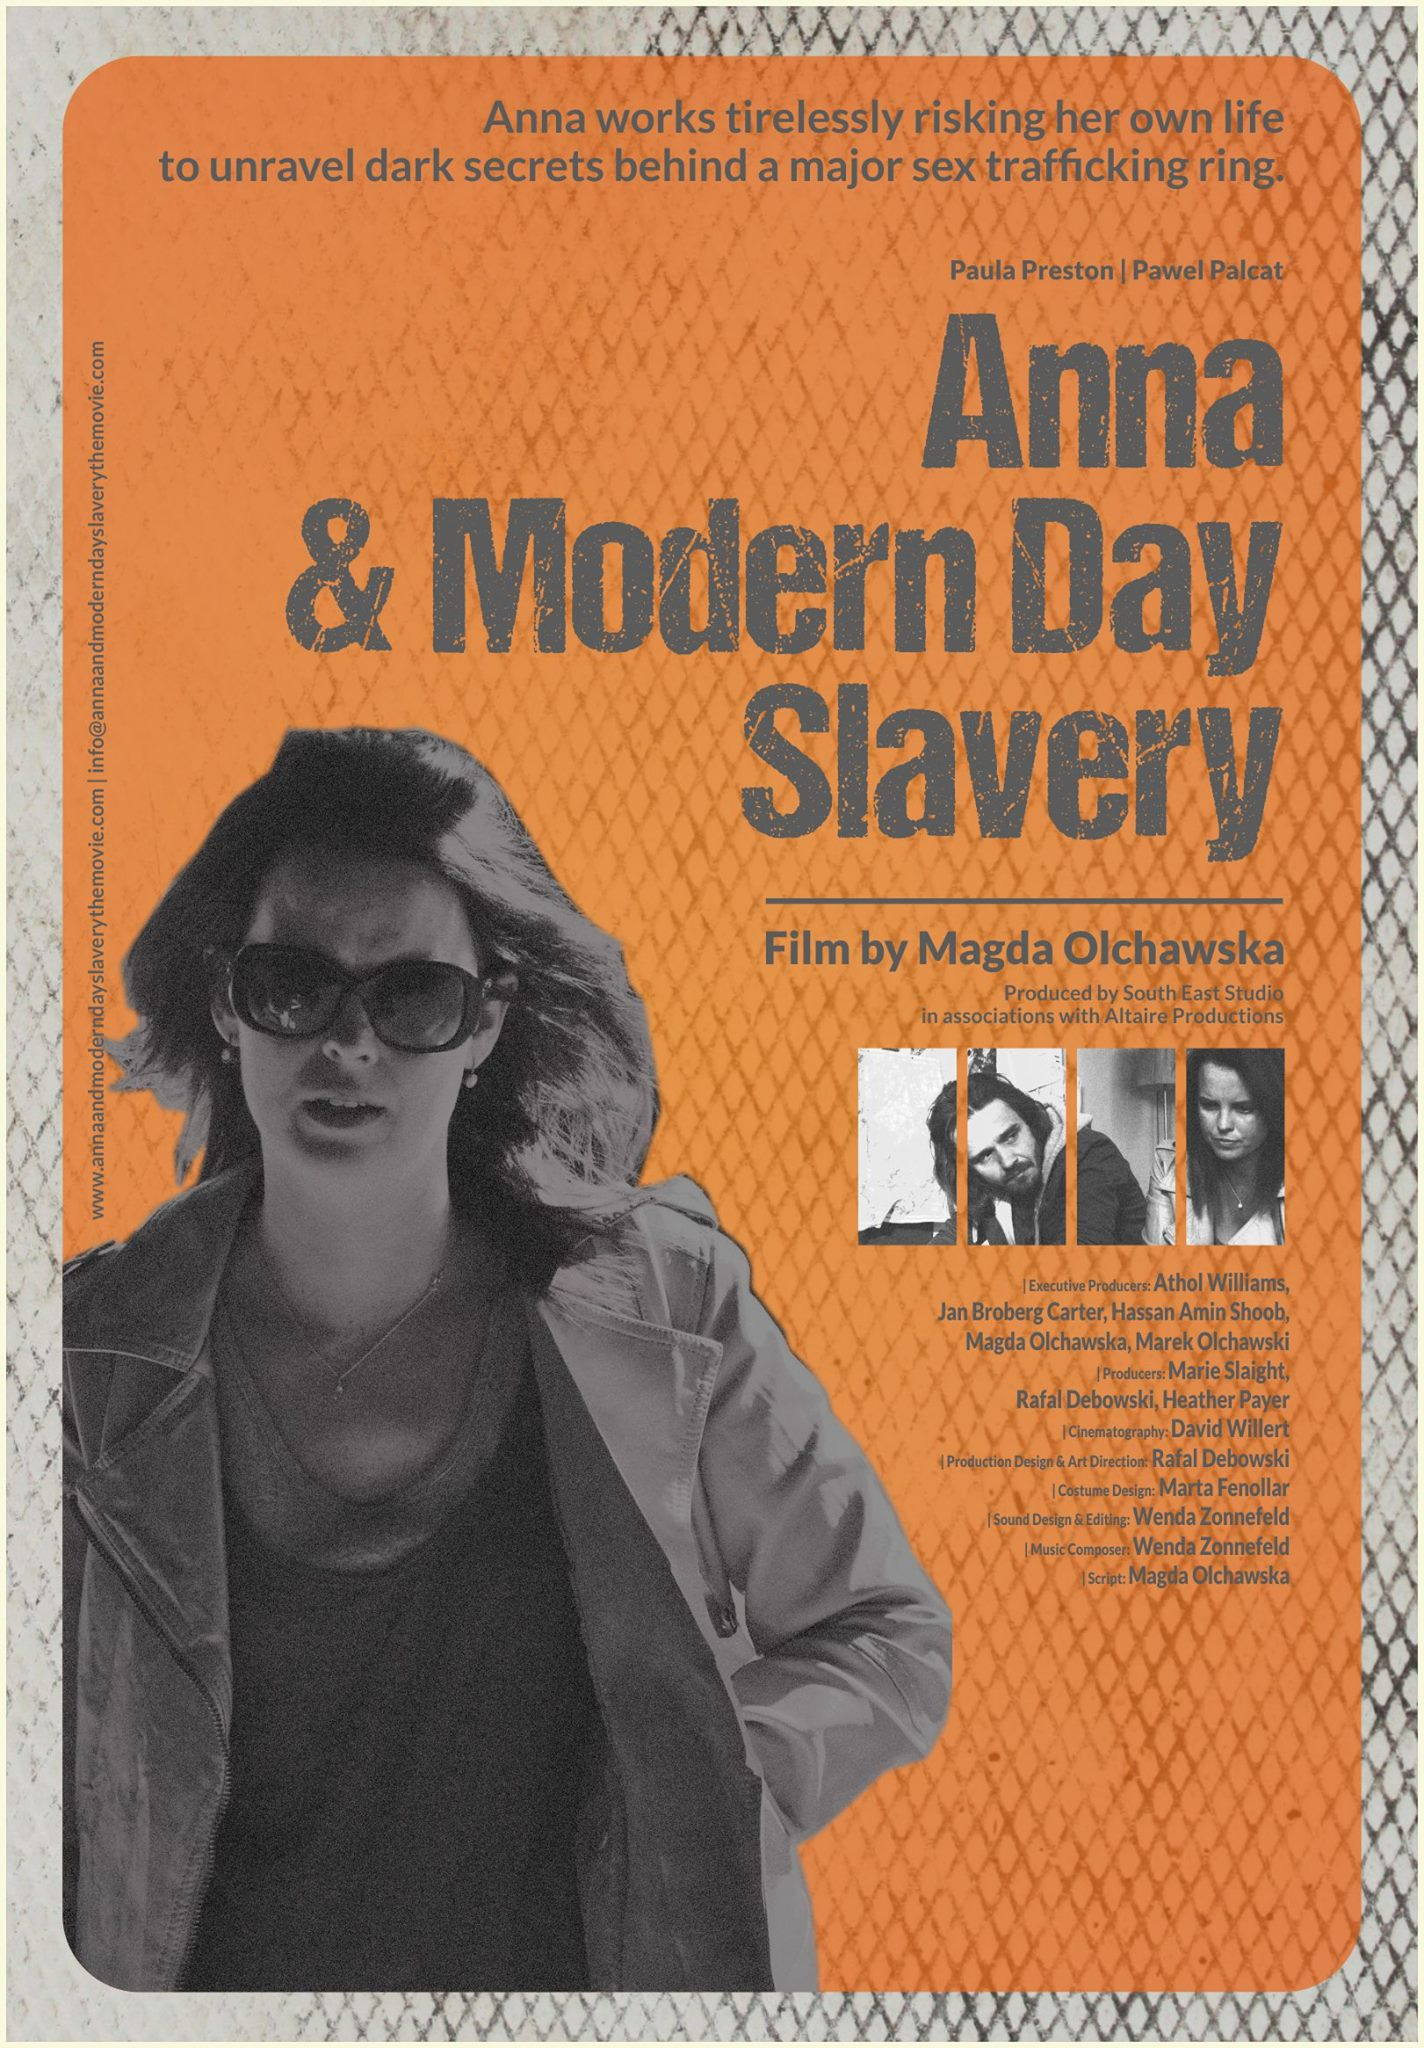 Anna & Modern Day Slavery official poster